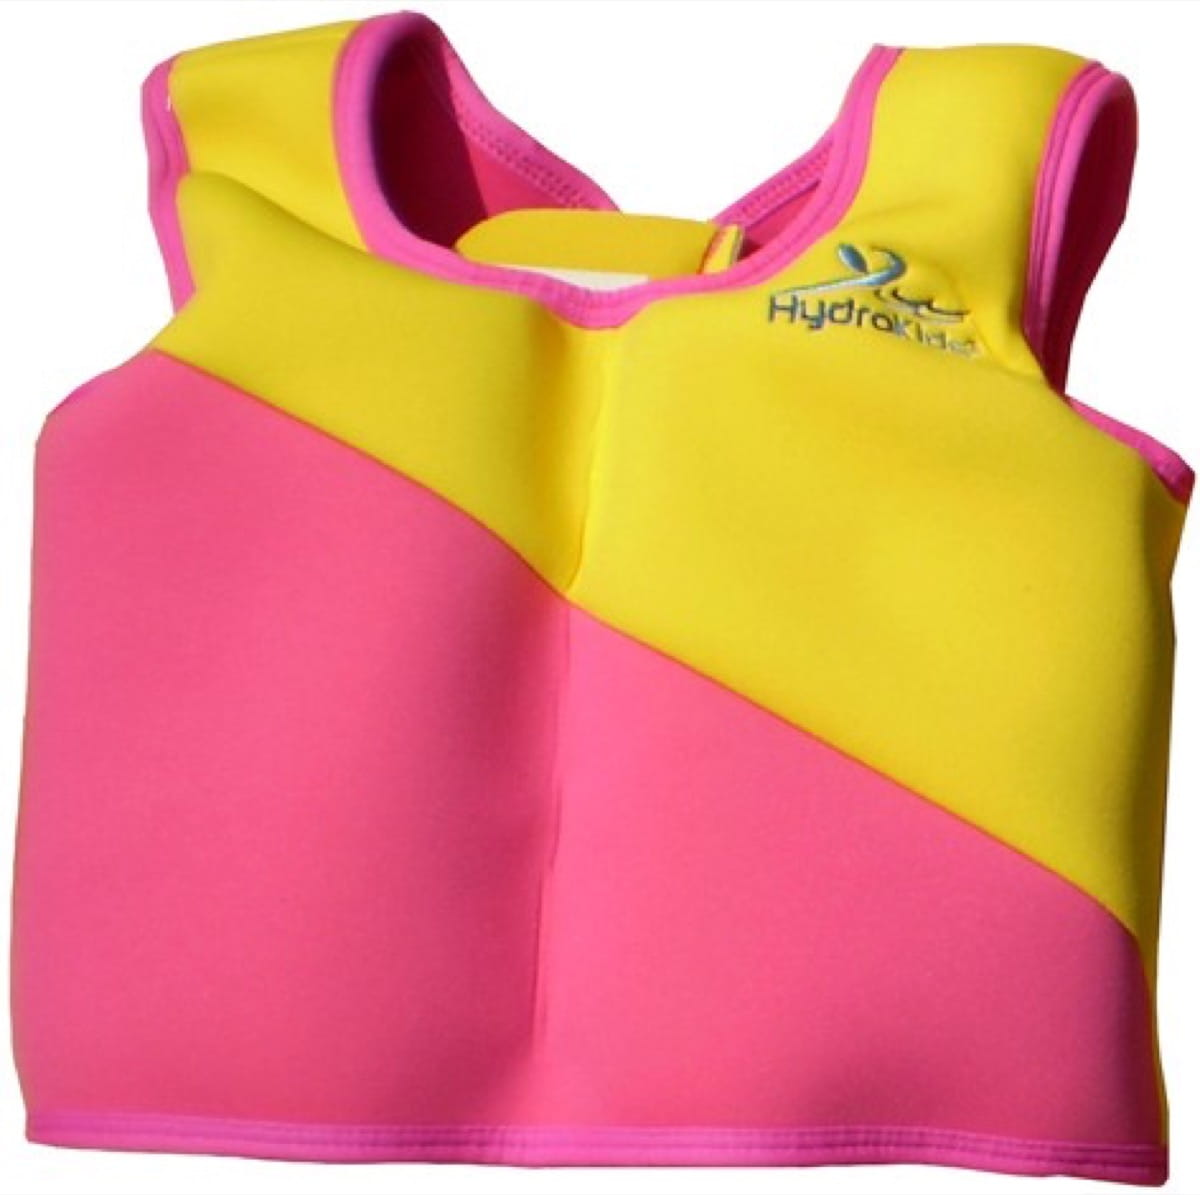 Swim Trainer Jacket PINK Size 1 (1-2 yrs)